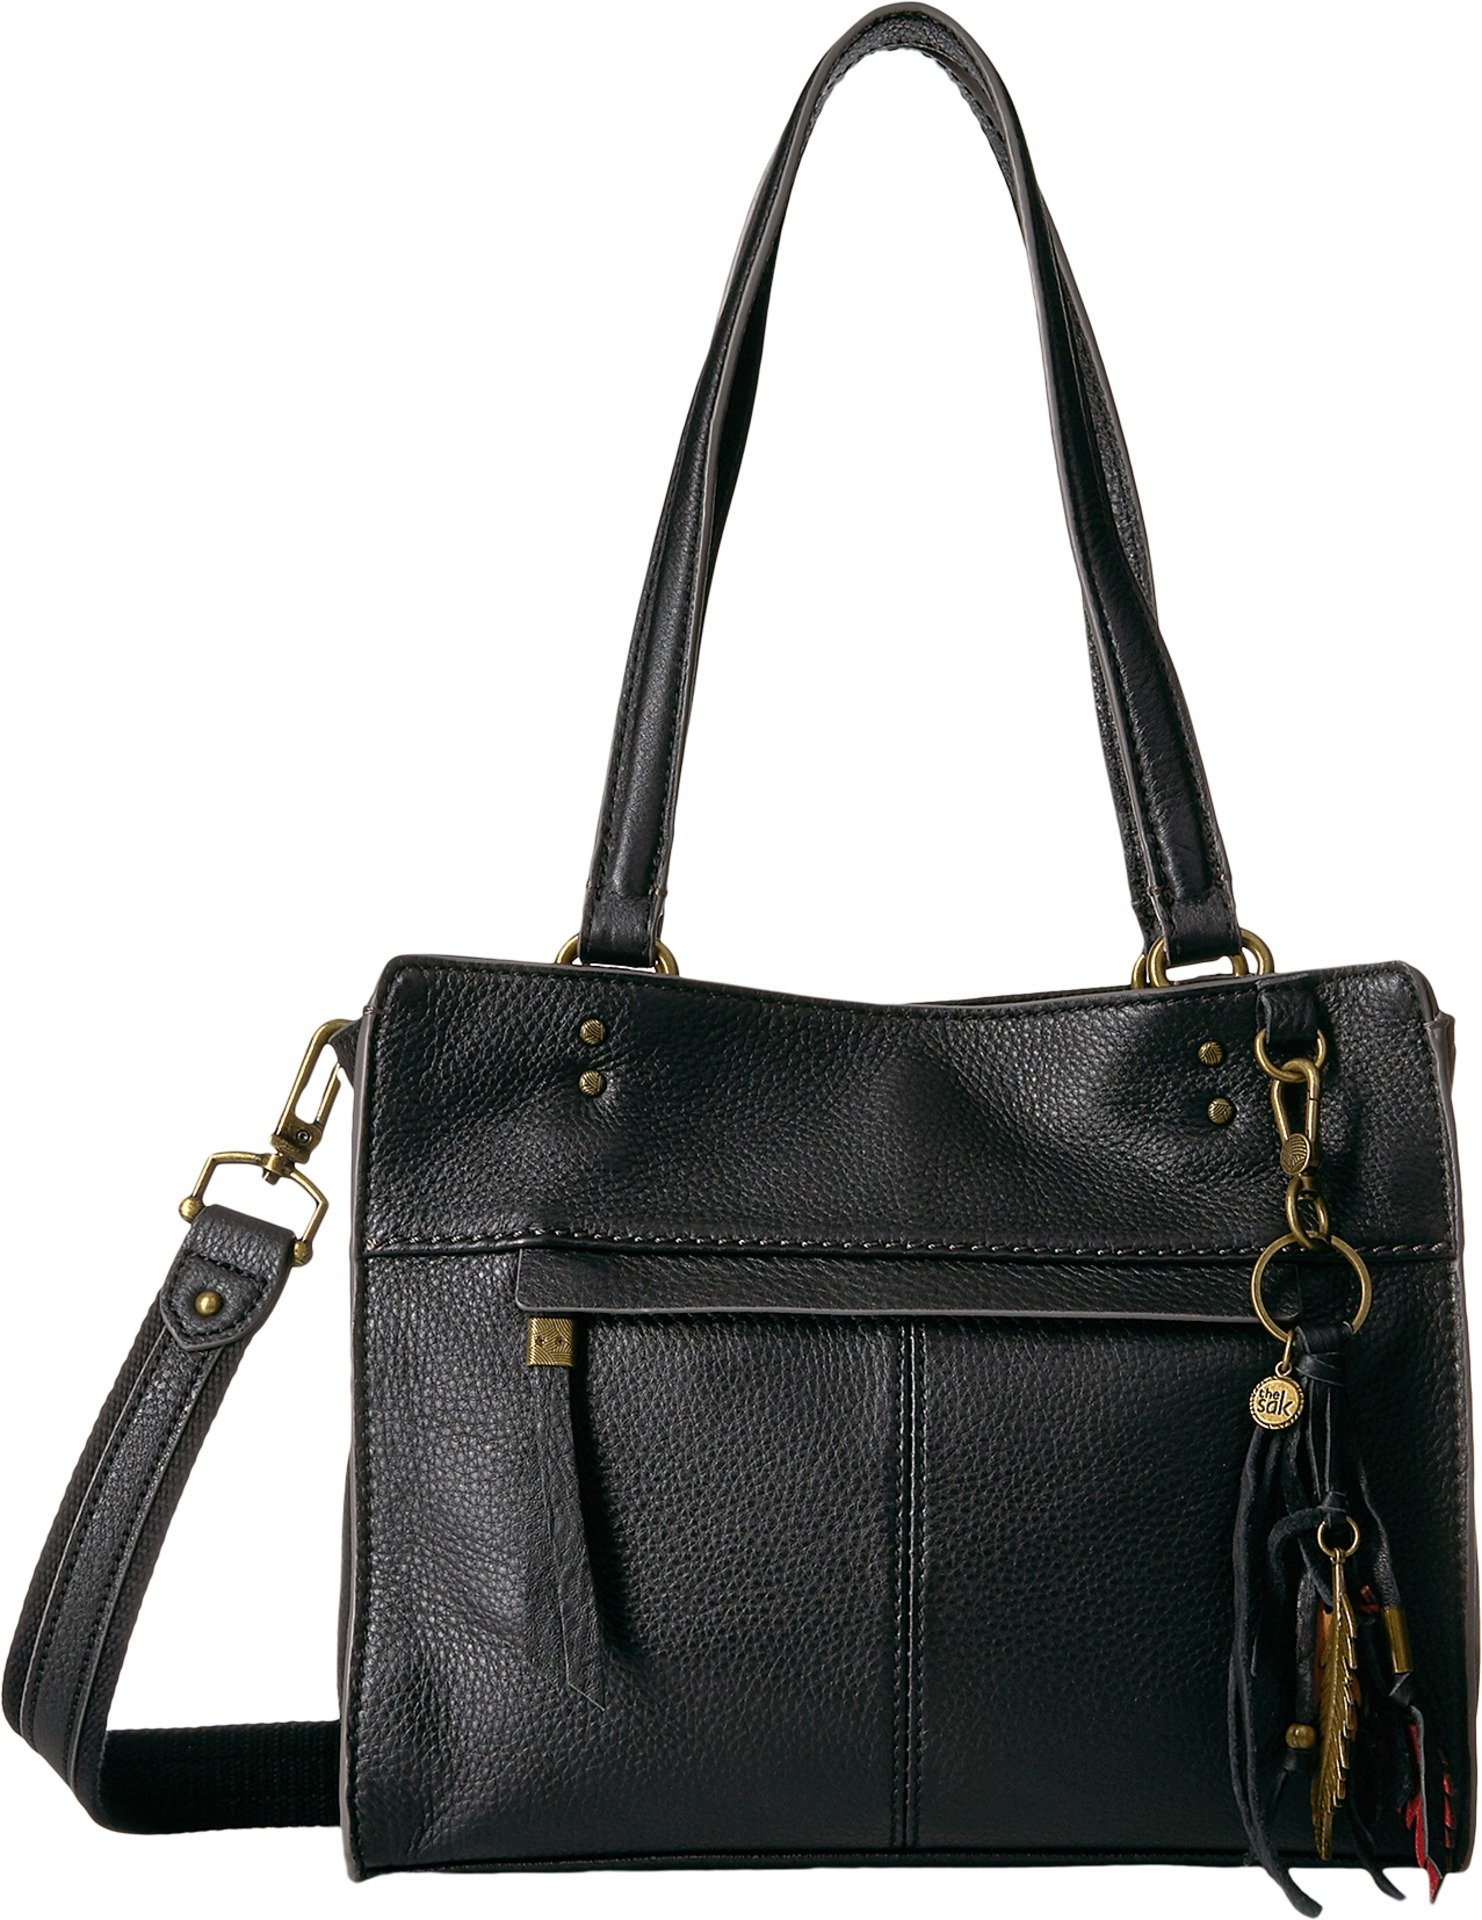 The Sak Women's Alameda Satchel, Black